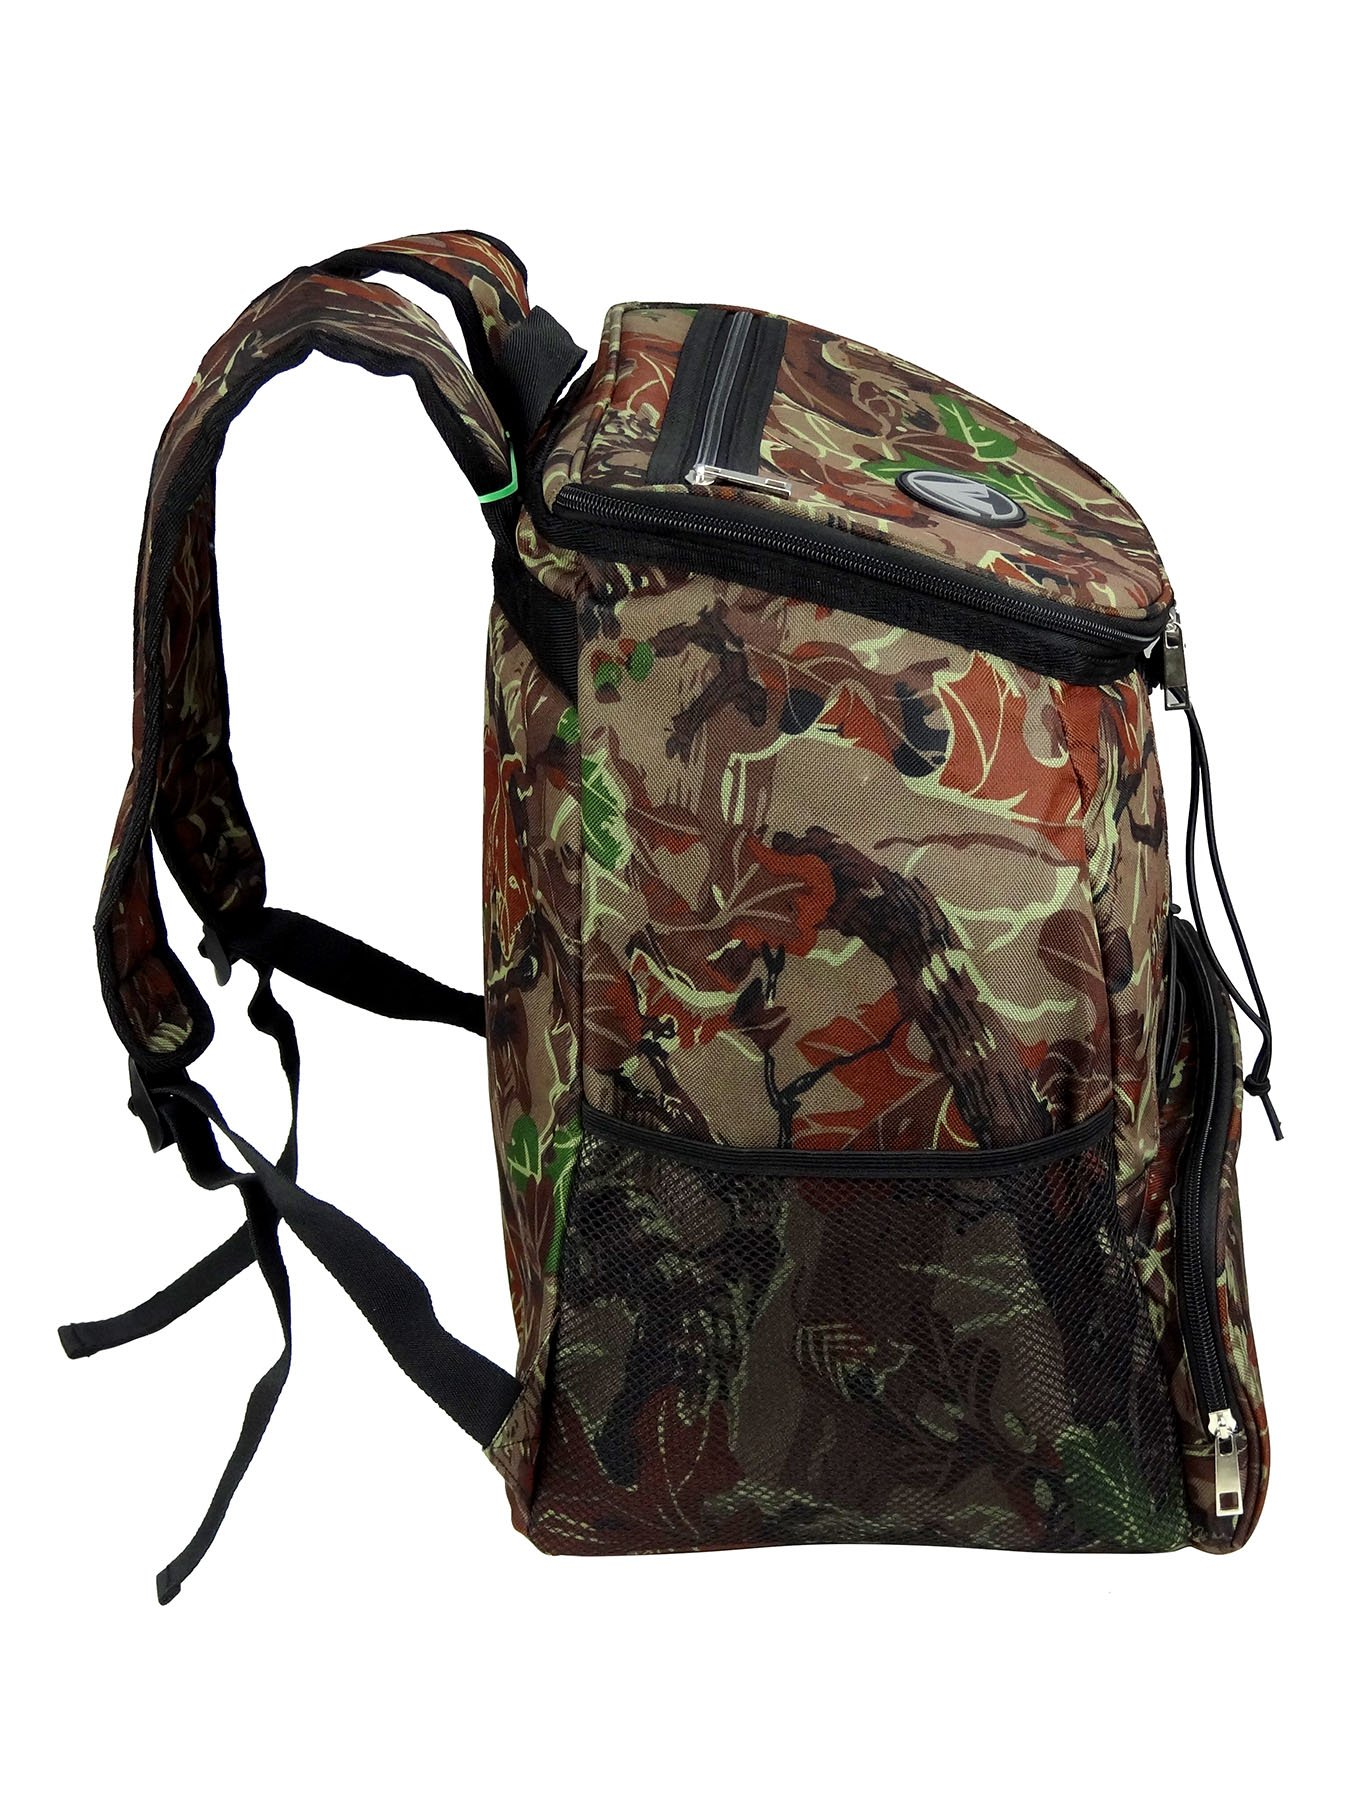 Large Padded Backpack Cooler - Fully Insulated, Leak and Water Resistant, Adjustable Shoulder Straps, Extra Storage Pockets - Camo - by GigaTent